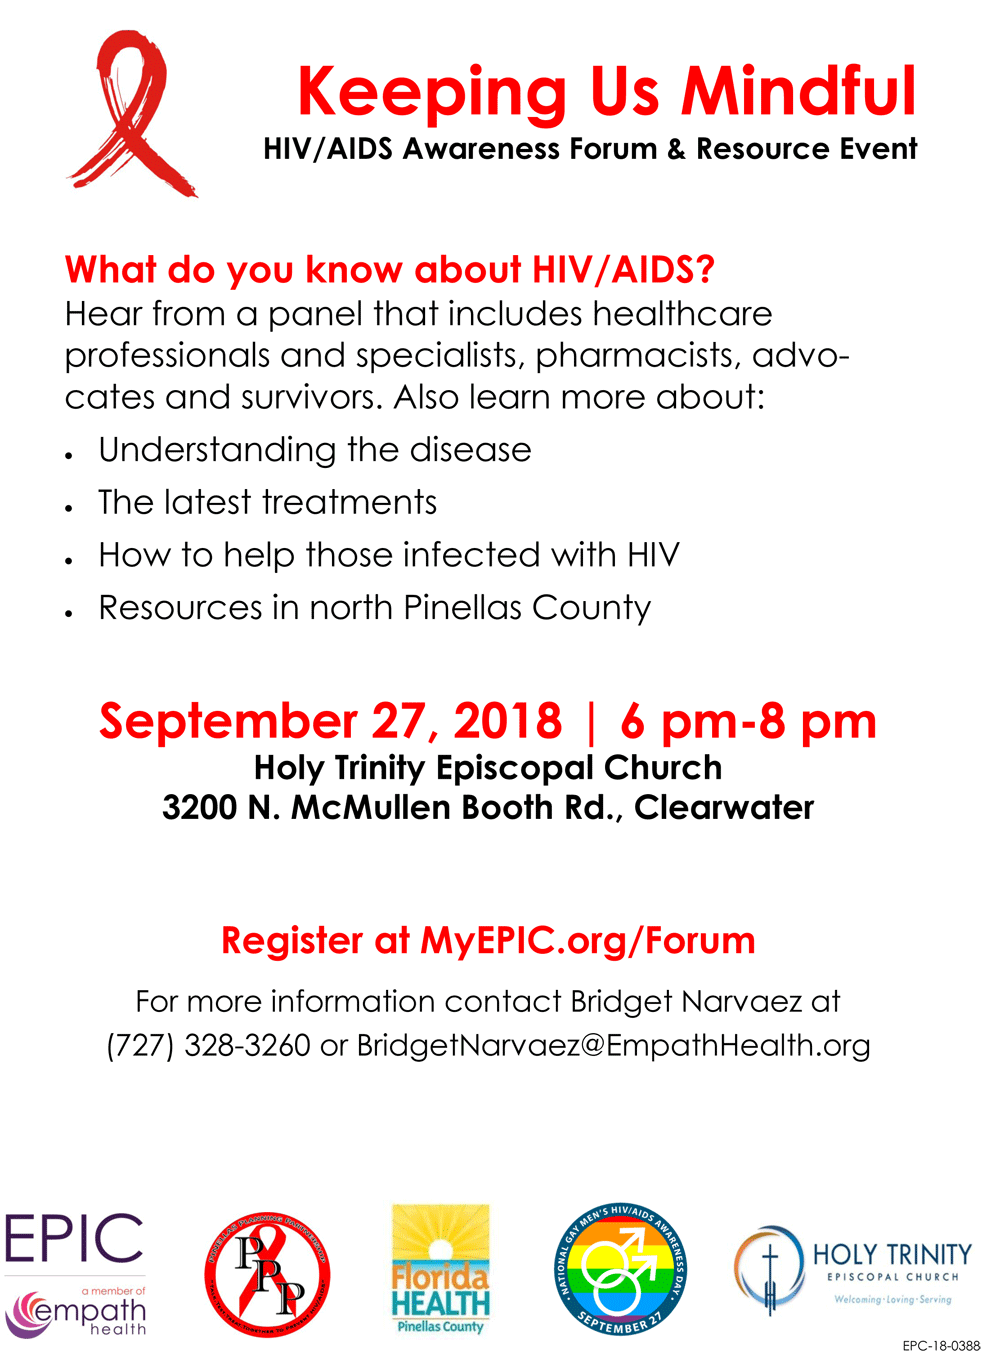 HIV/AIDS Awareness Forum, Roundtable and Resource Event @ Holy Trinity Episcopal Church | Clearwater | Florida | United States